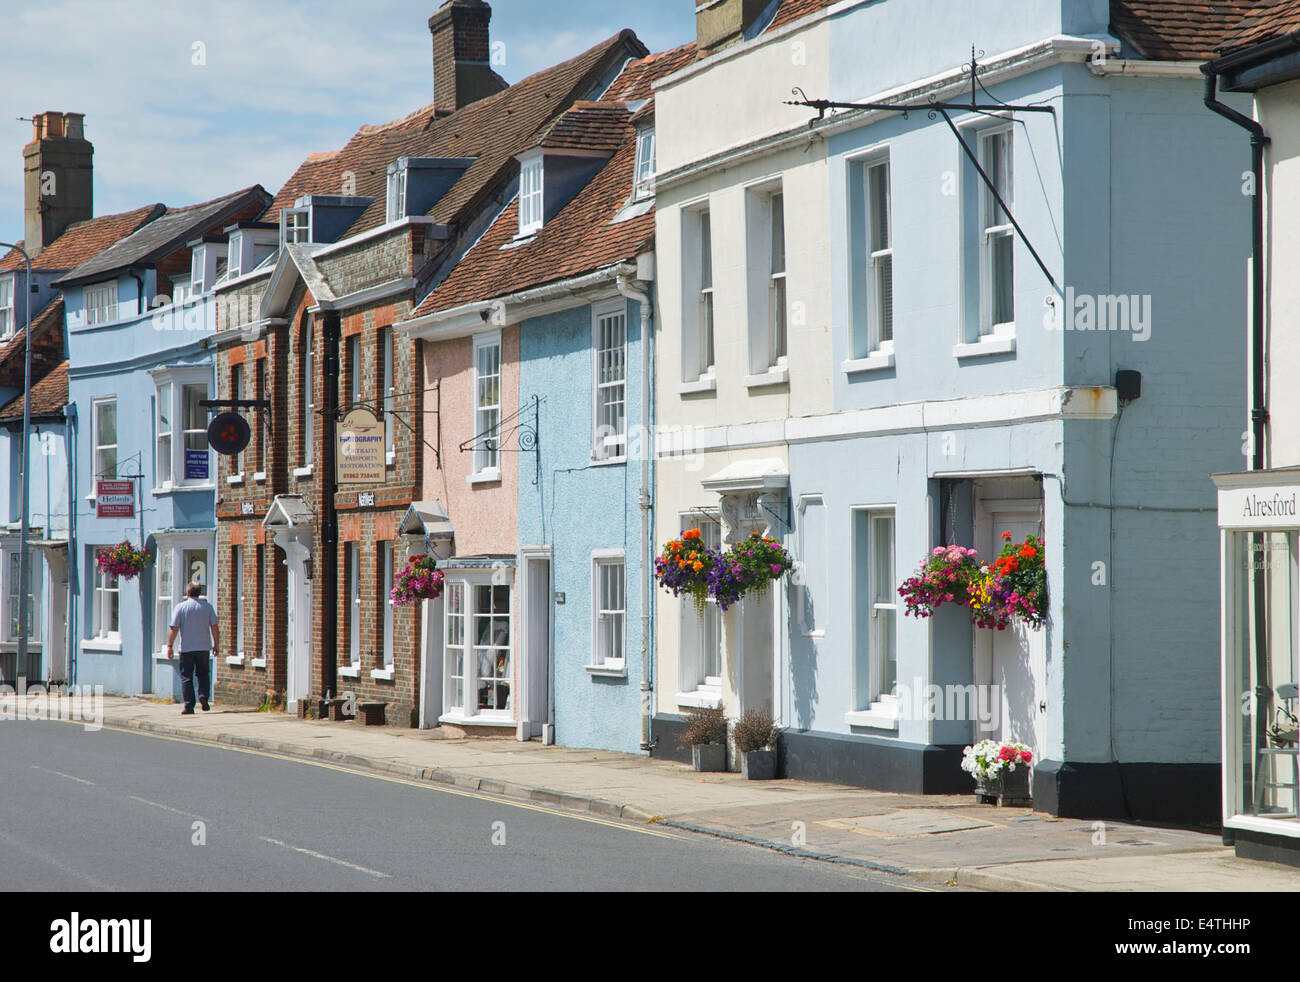 Alresford, Hampshire, England UK - Stock Image